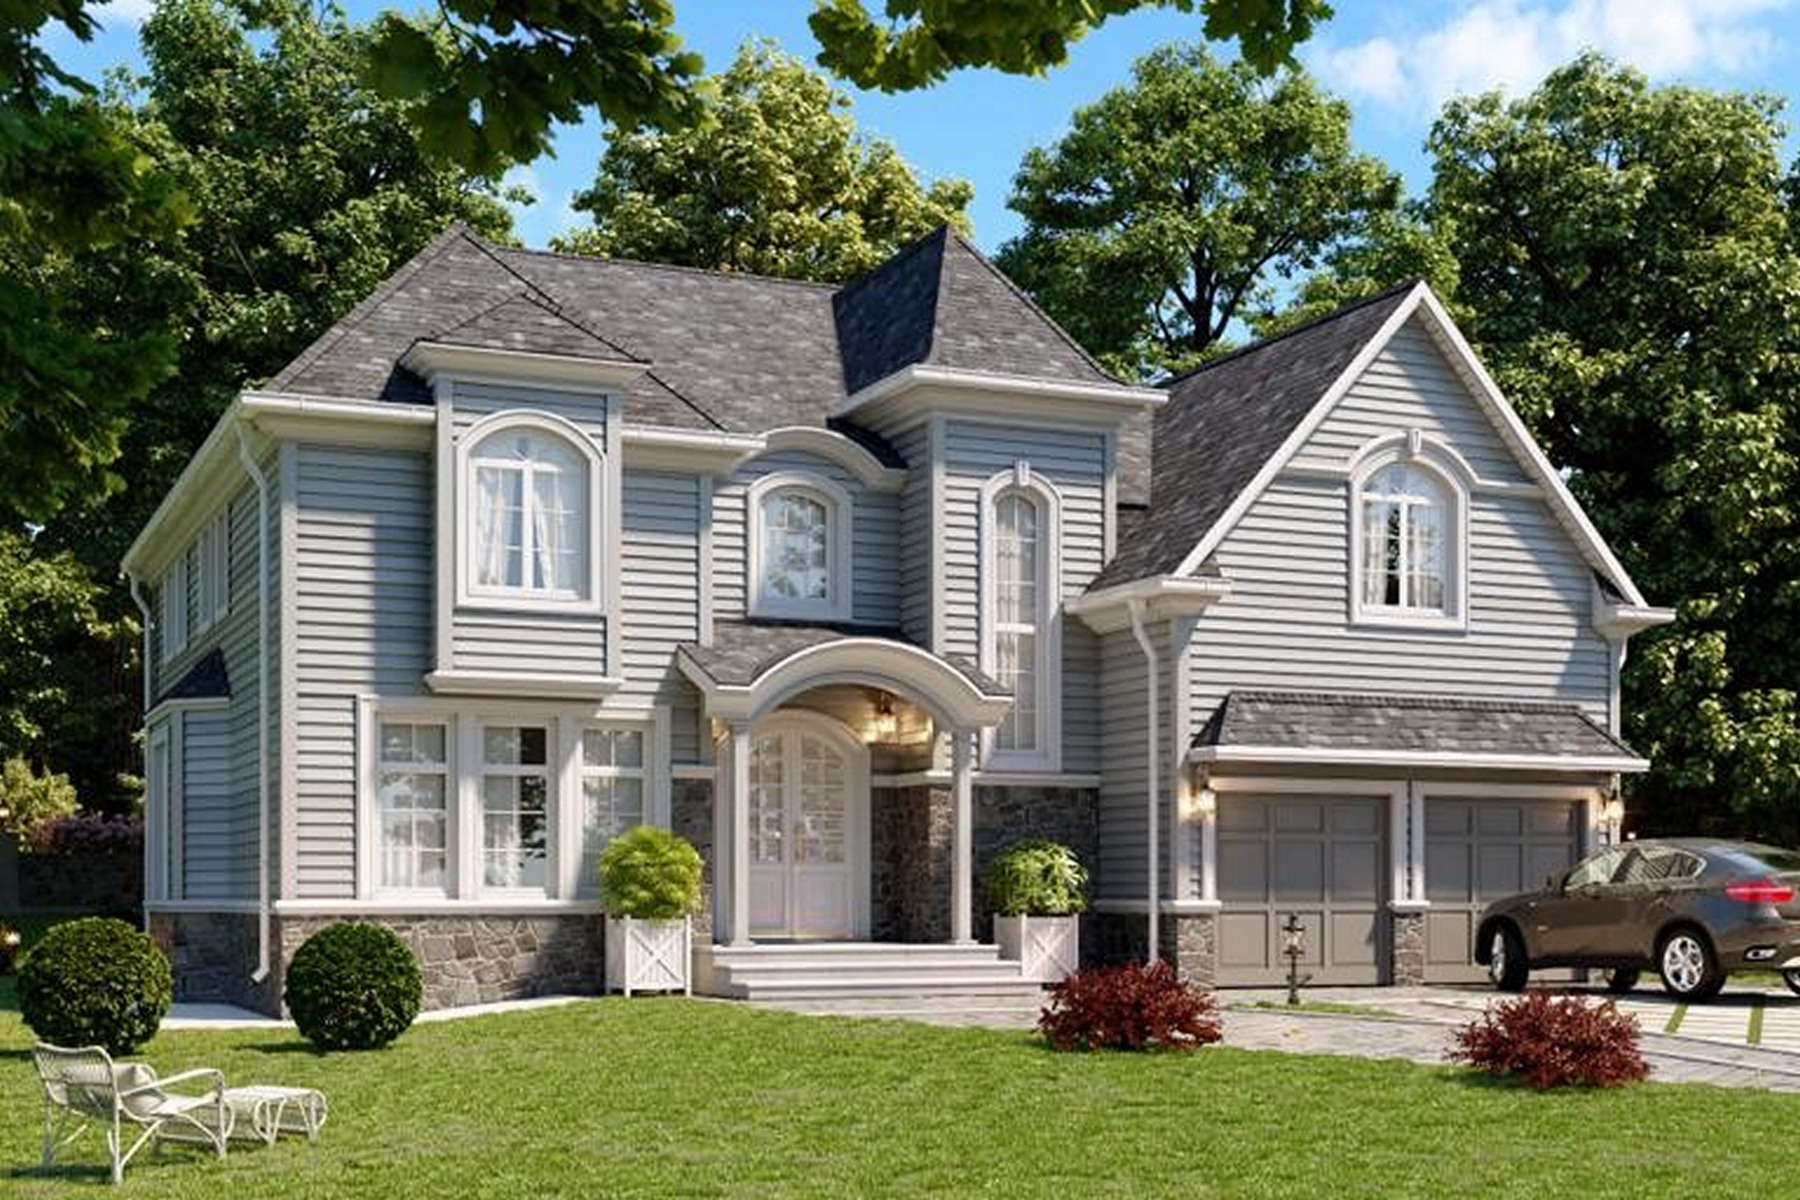 Single Family Homes for Sale at Dream Home 63 Park St Tenafly, New Jersey 07670 United States